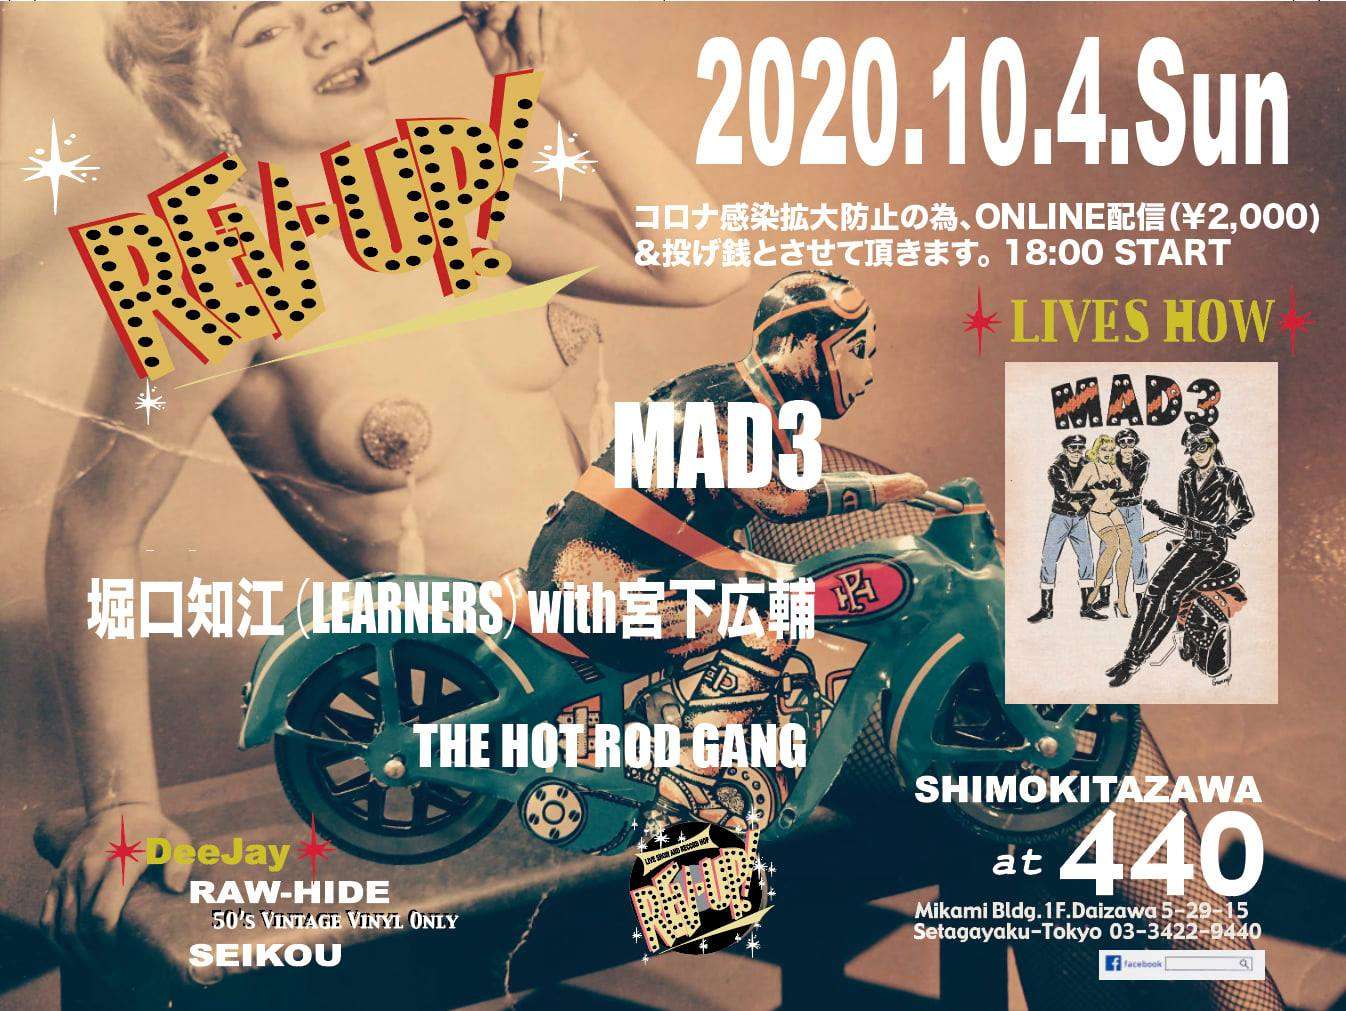 【無観客 有料配信】『REV-UP! Vol.77』Bands…. MAD3  / 堀口知江(LEARNERS)with 宮下広輔 / THE HOT ROD GANG / DeeJay…. RAW-HIDE